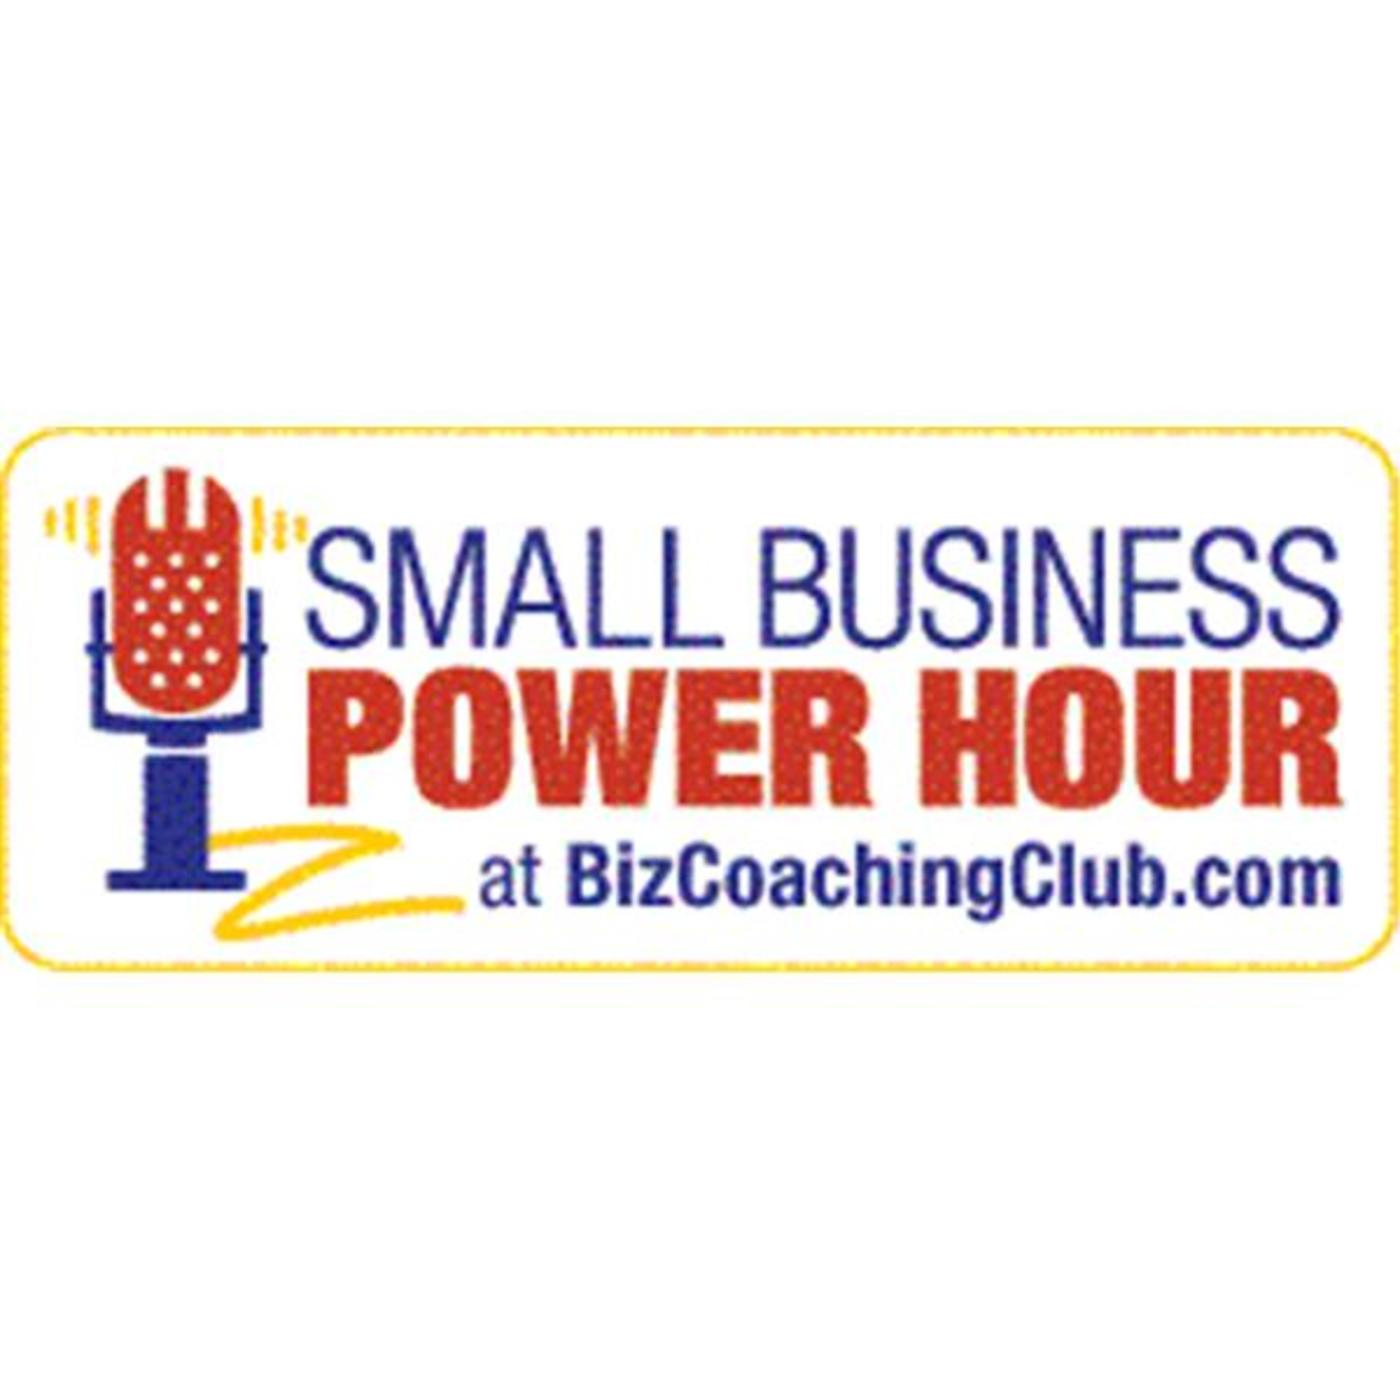 Small Business Power Hour